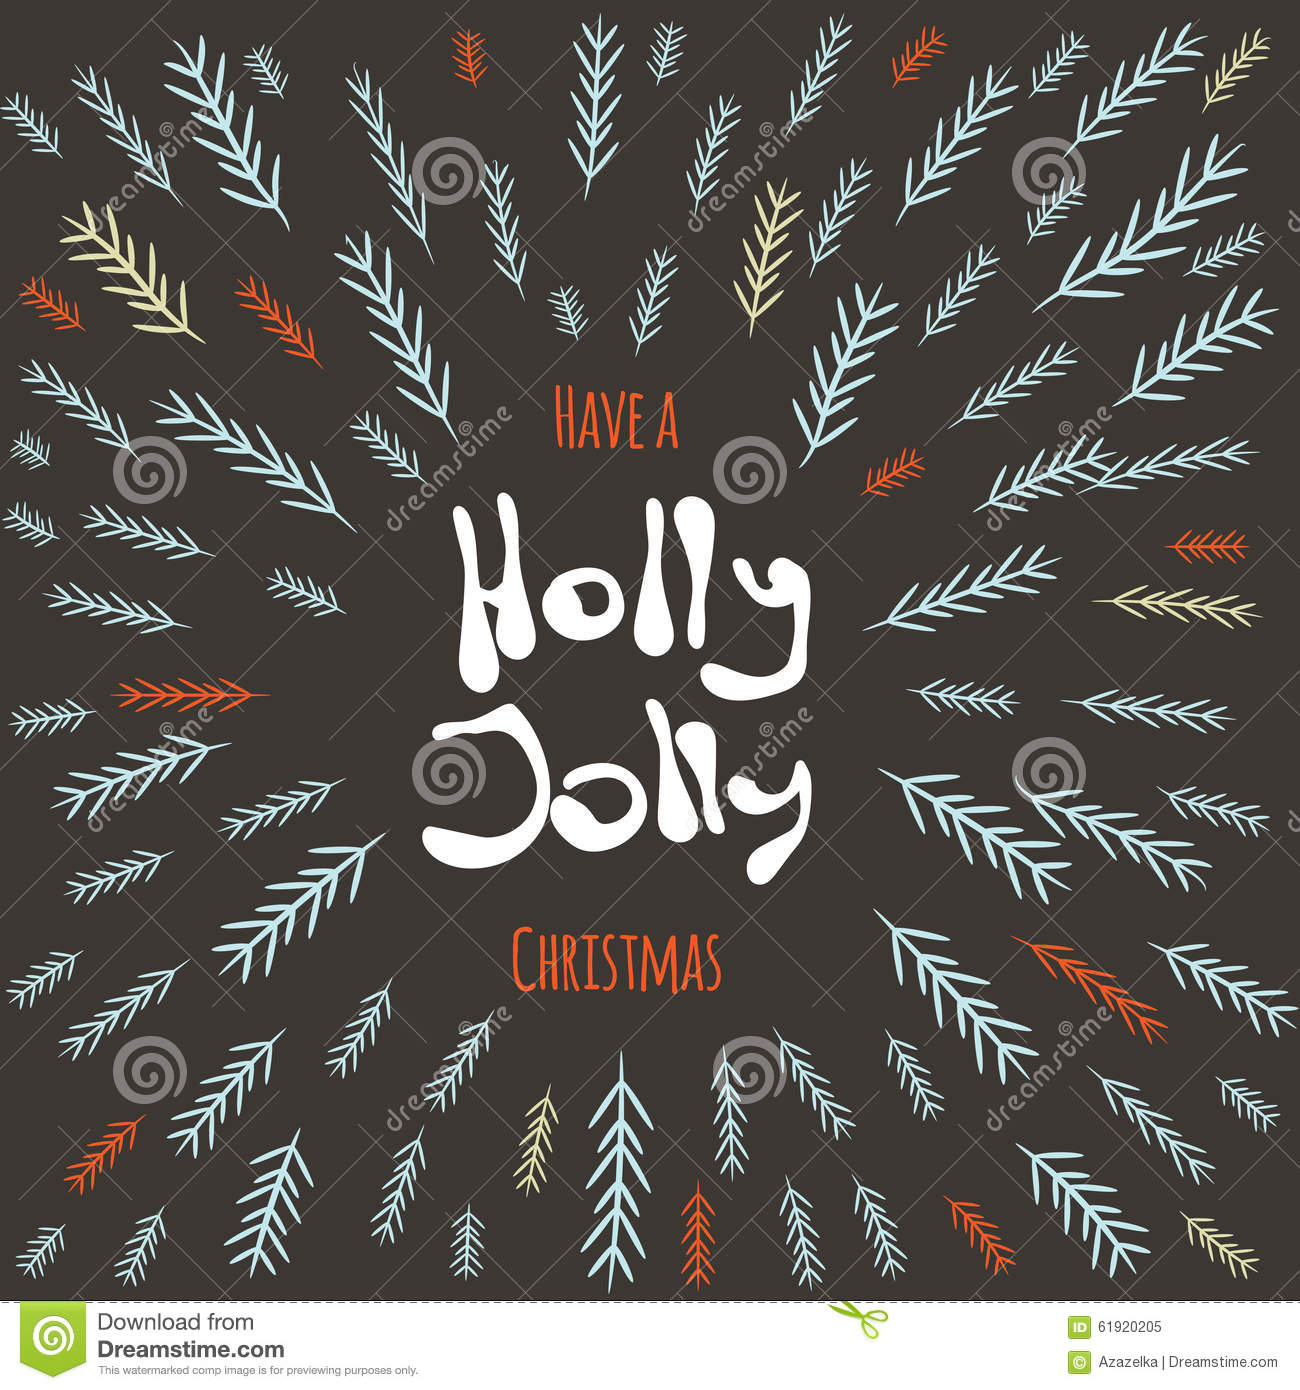 have a holly jolly christmas postcard vector illustrated background